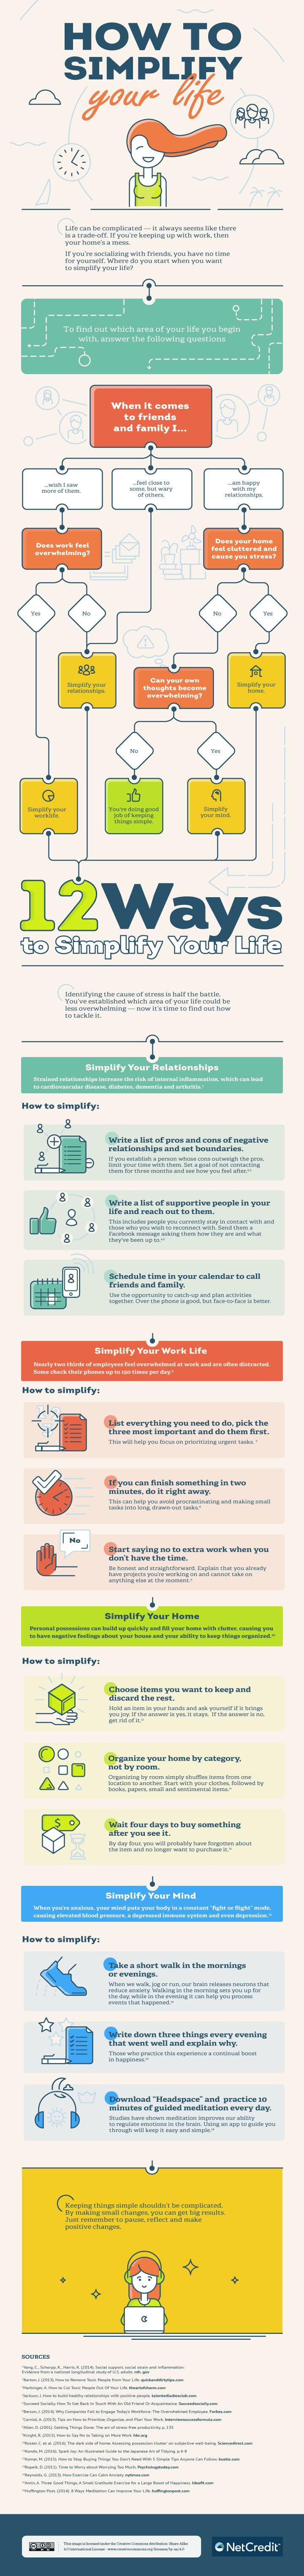 How to Simplify Your Life - #infographic